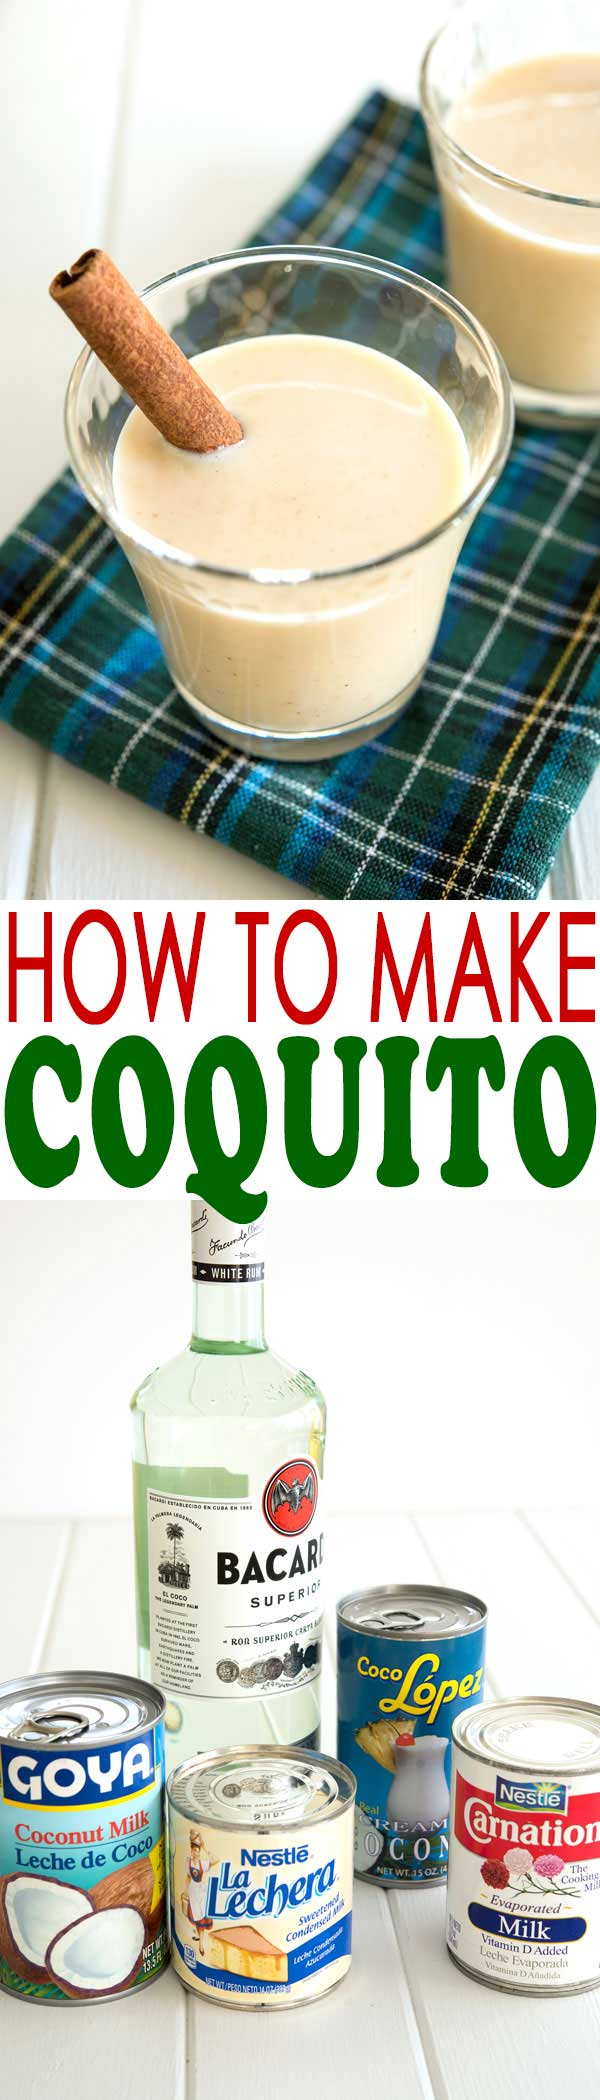 How to make bottles of authentic Puerto Rican Coquito with no eggs! Coquito Recipe (receta) | #cocktails #drinks